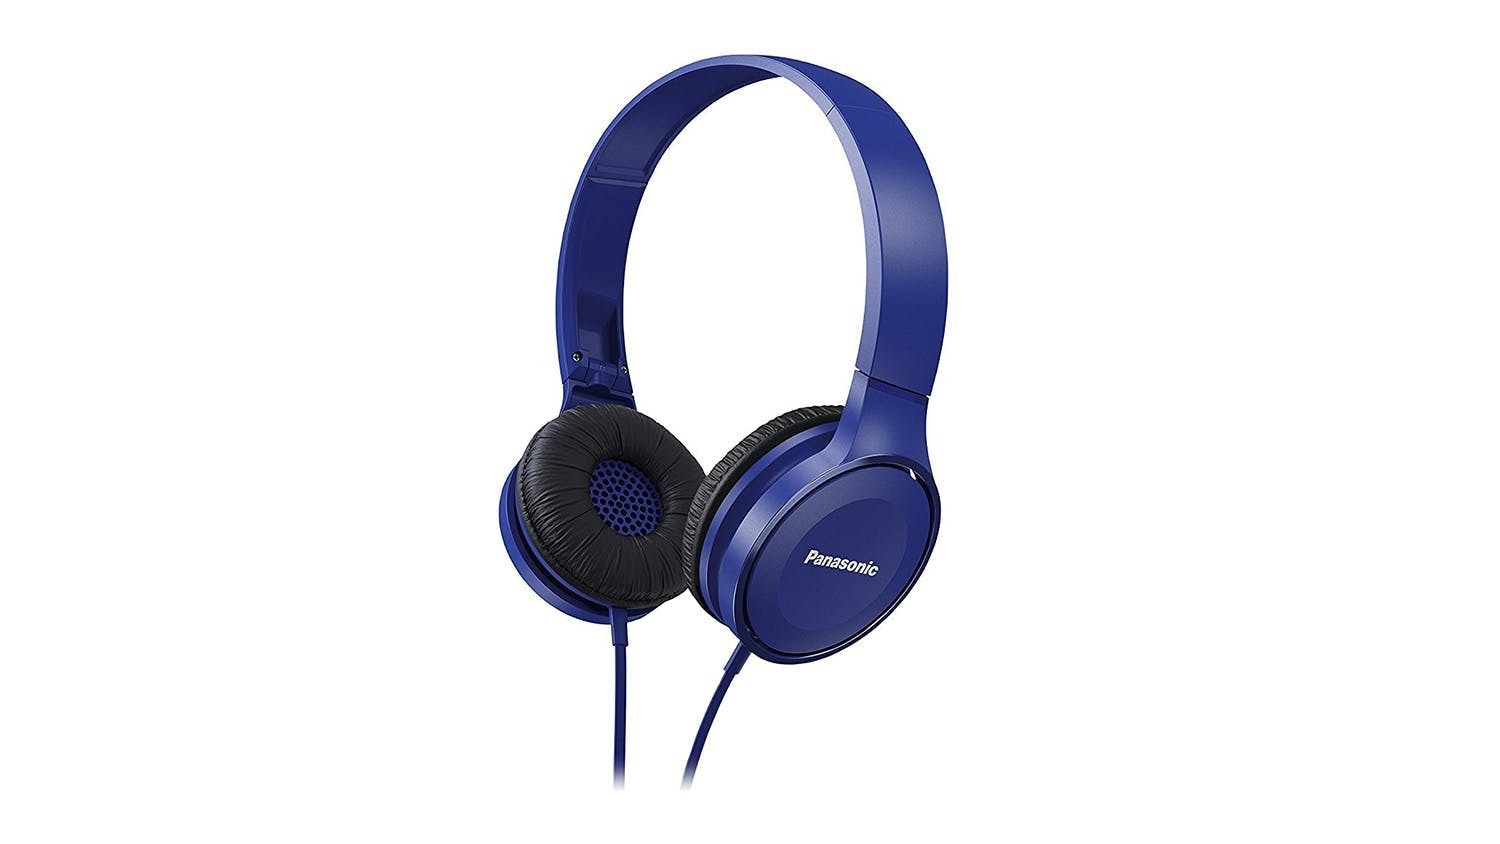 Panasonic RP-HF100 On-Ear Headphones - Blue